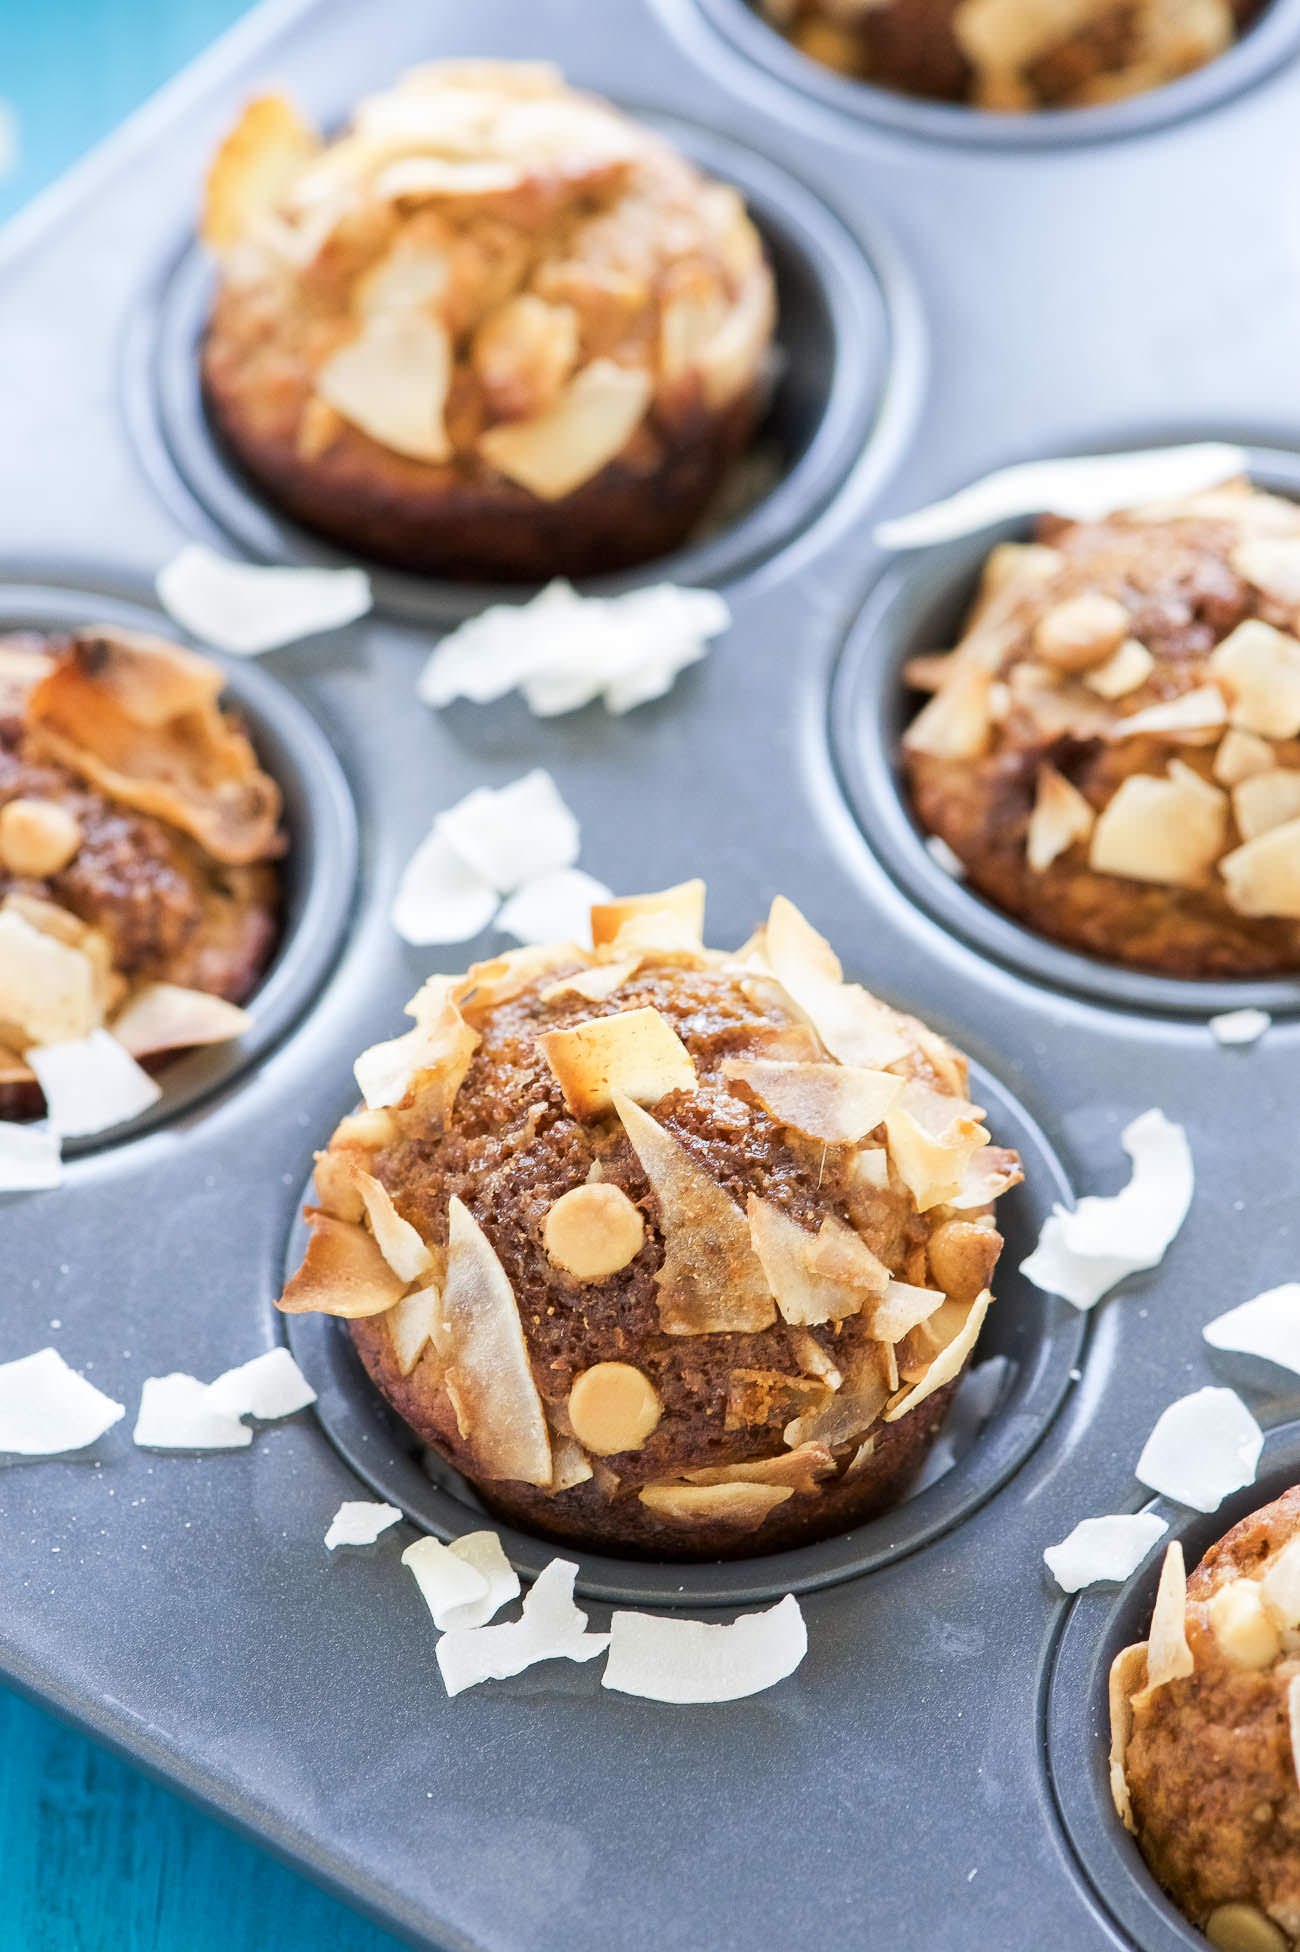 Okay let's talk a little about these muffins. First off, the ripest bananas are the BEST. I've already said it, but I'll say it again — when they are their ripest they are also at their sweetest. I've found when the skins are completely black they make for the very best banana baked good.